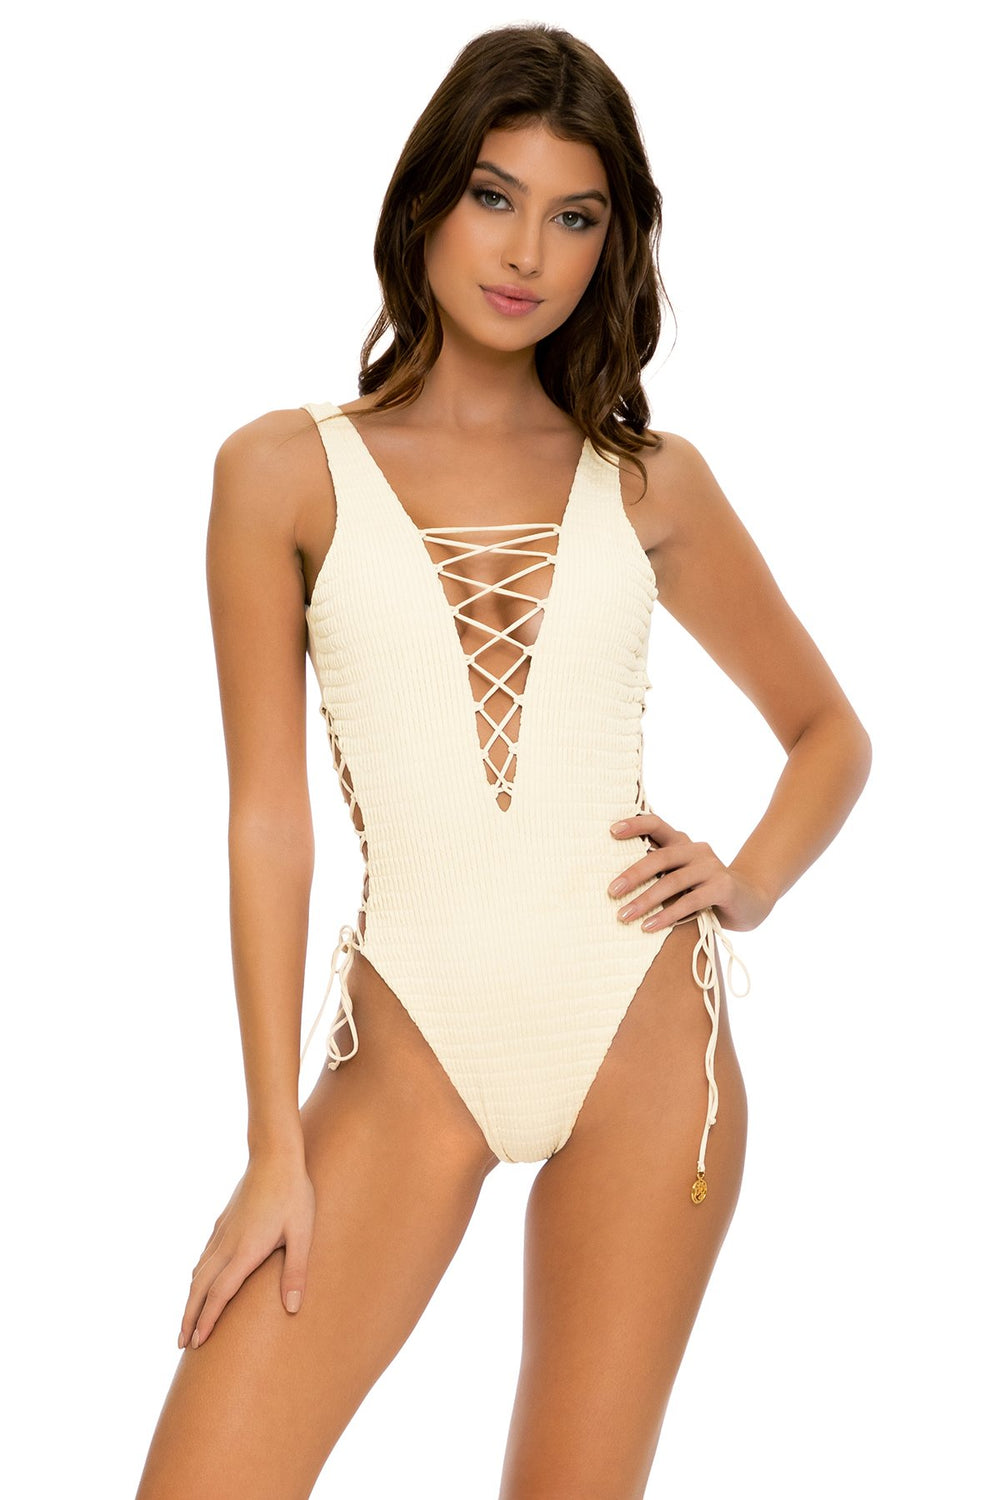 DESERT STAR - Open Side One Piece Bodysuit • Ivory